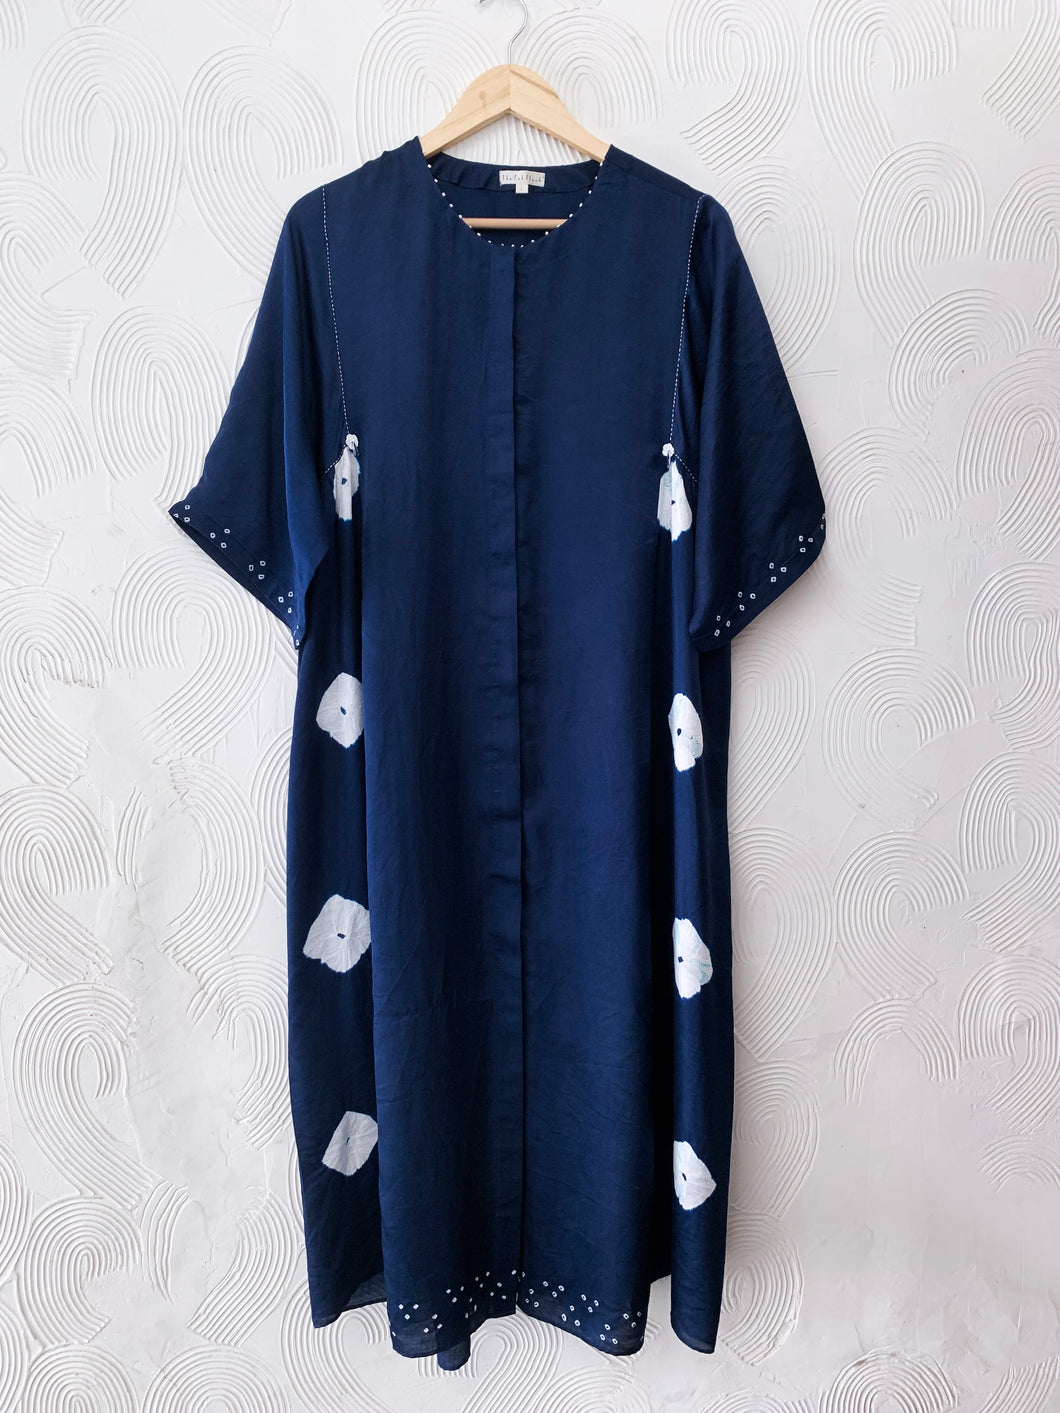 INDIGO SILK BANDHANI PANEL DRESS